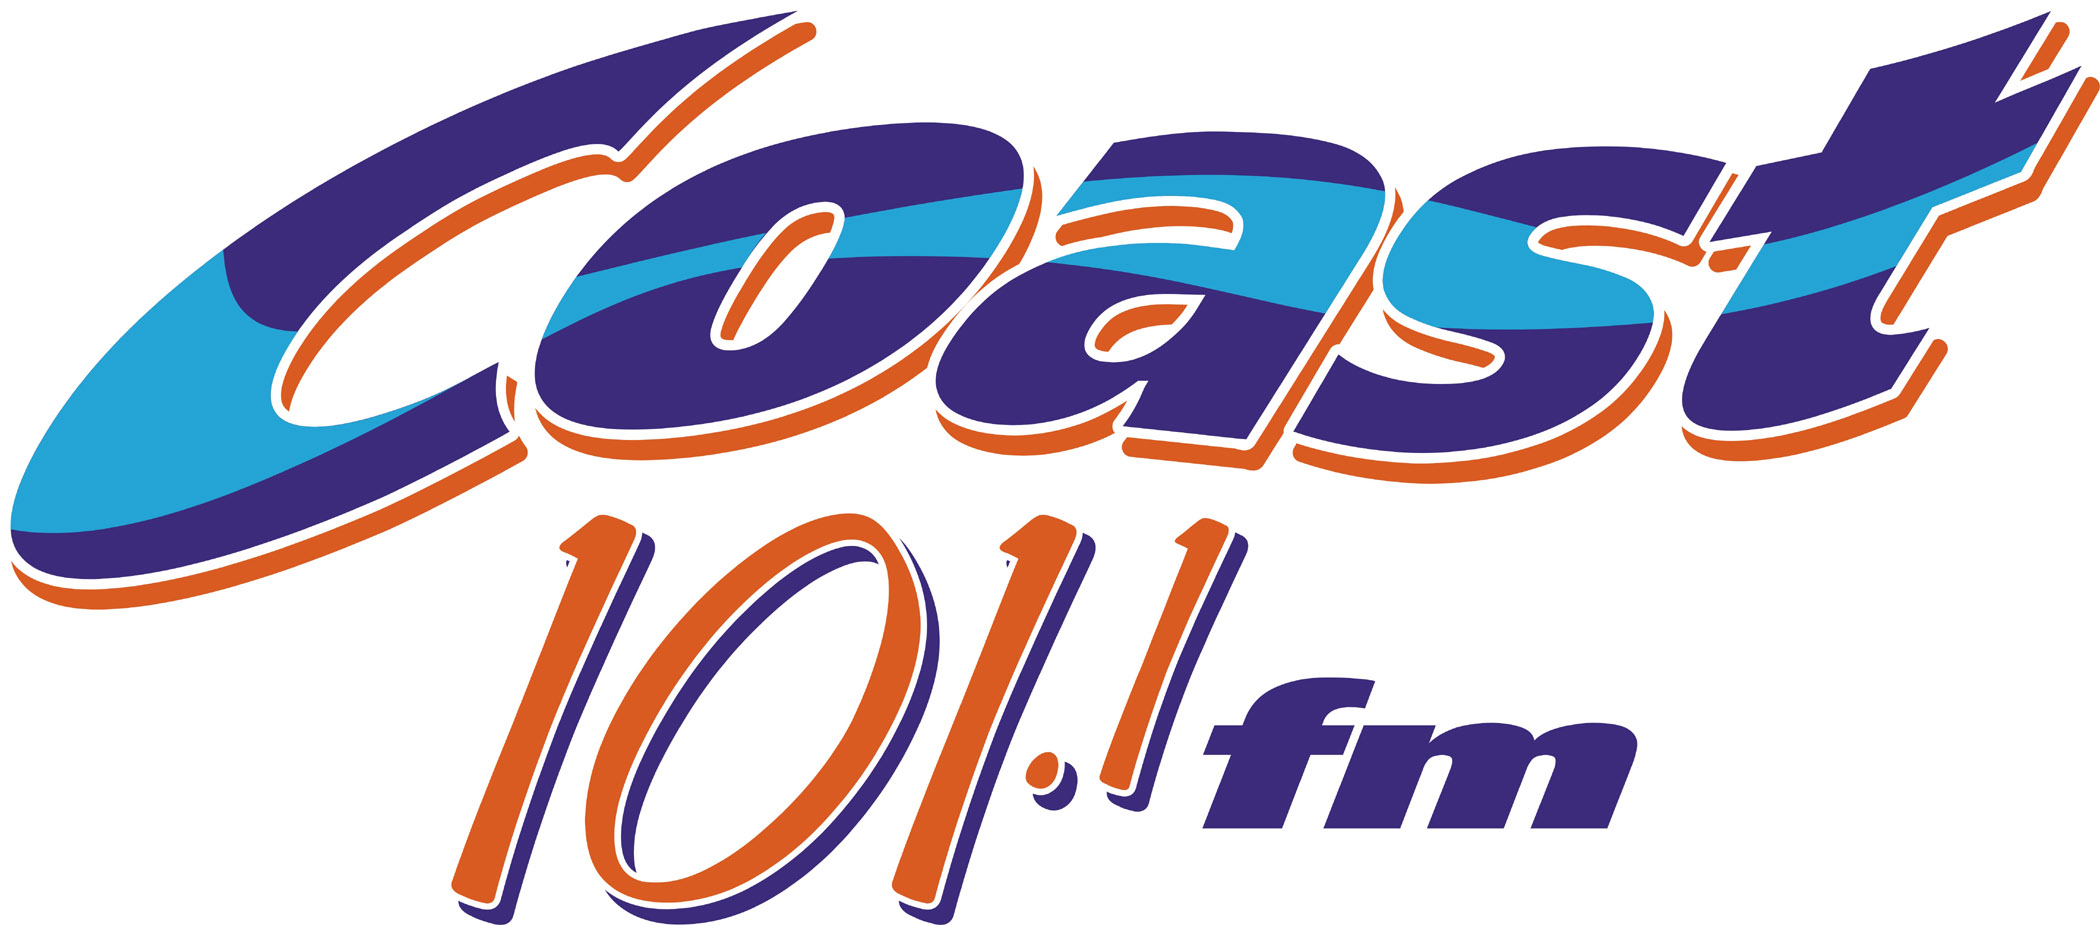 Downtown on the Coast on Coast 101.1FM is Looking to Build its ...